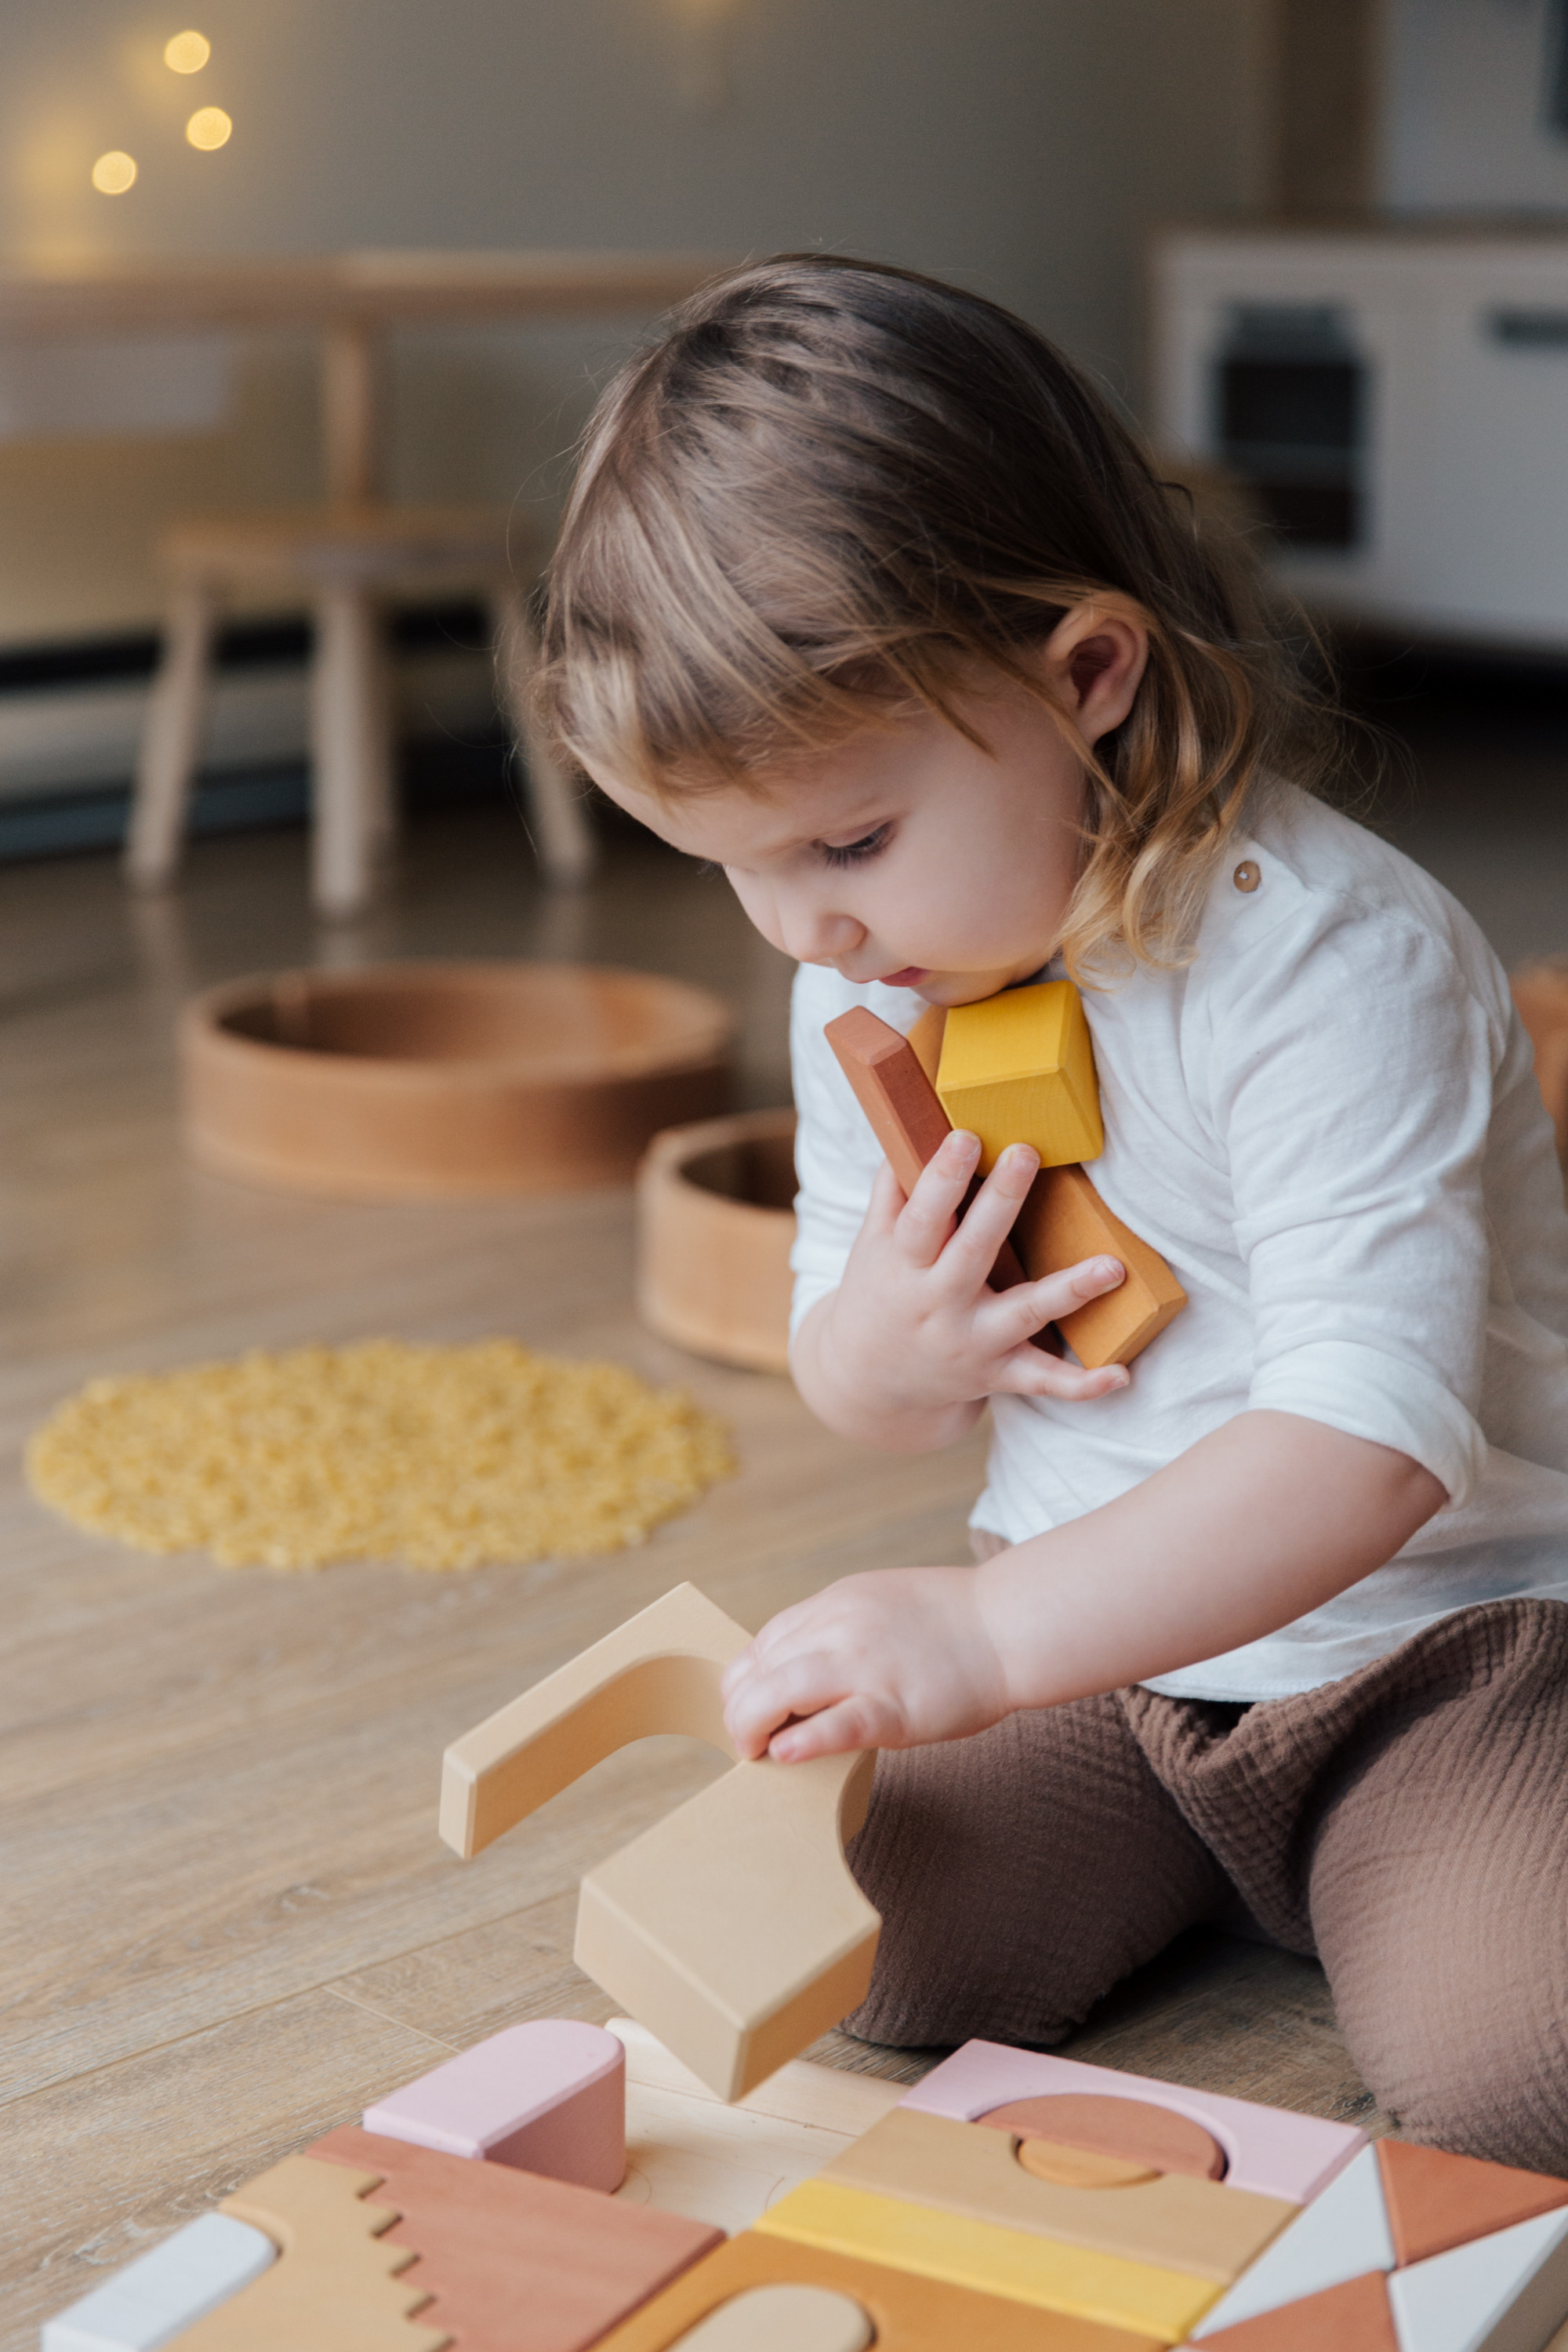 photo-of-child-holding-wooden-blocks-3933276